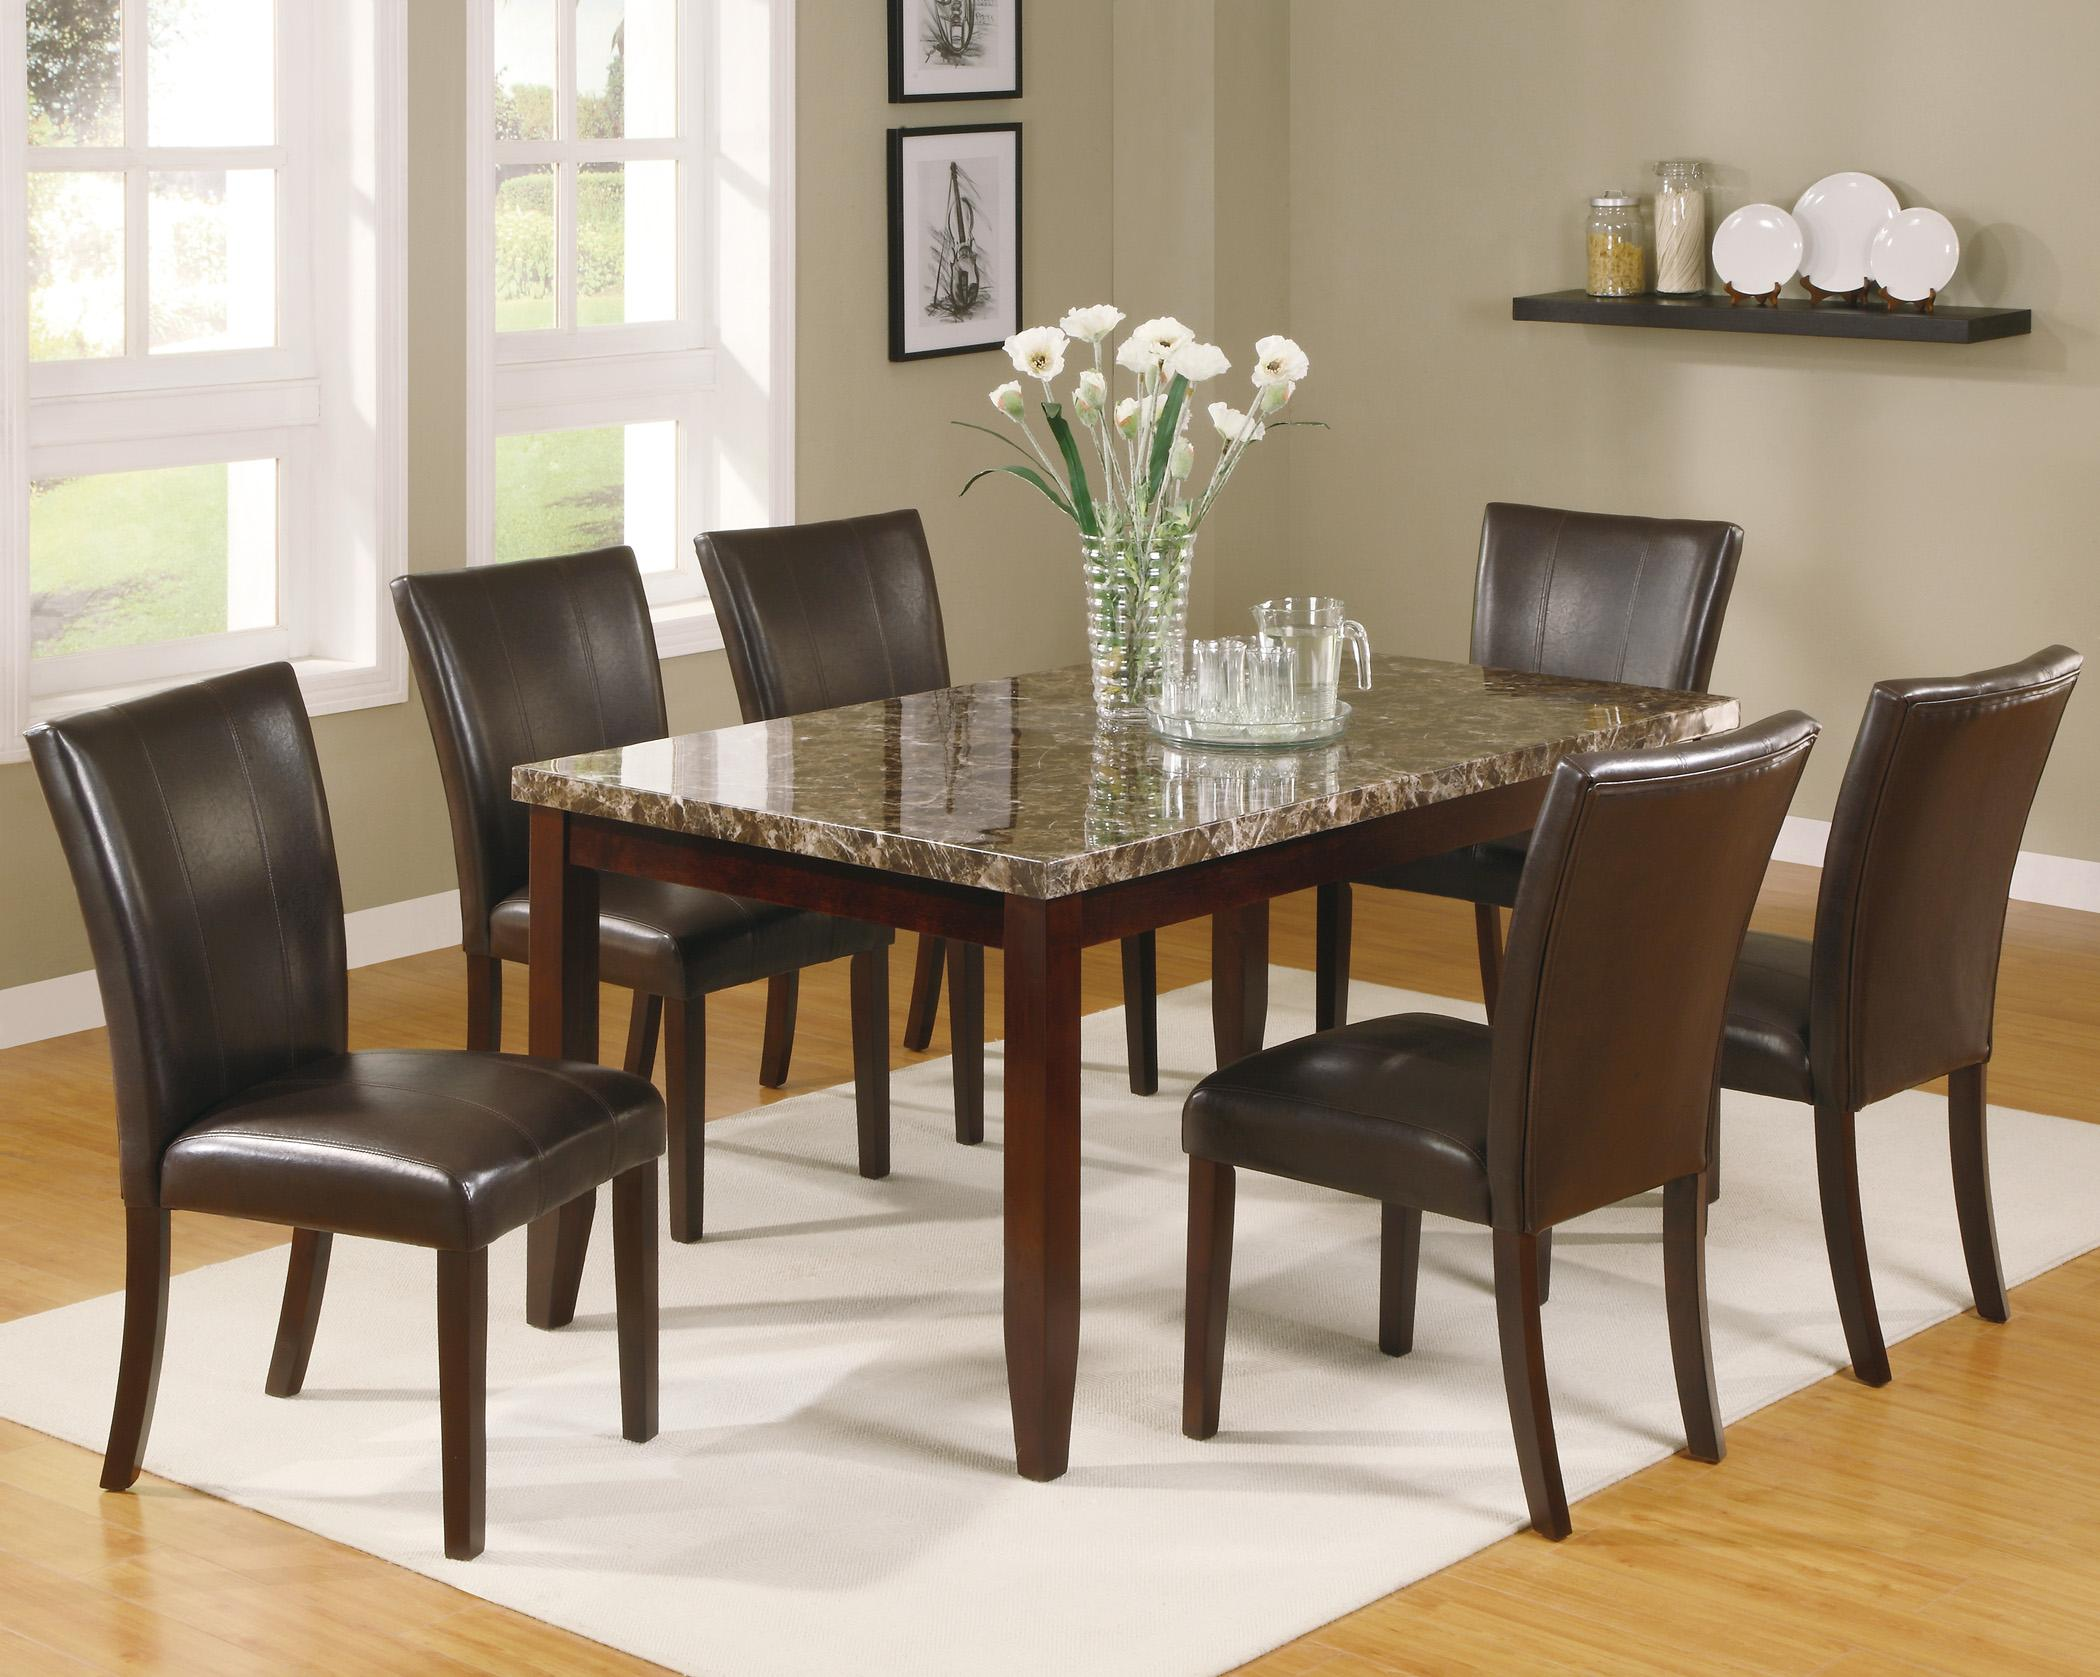 Ferrara 7 Piece Dining Table and Chairs Set by Crown Mark at Northeast Factory Direct